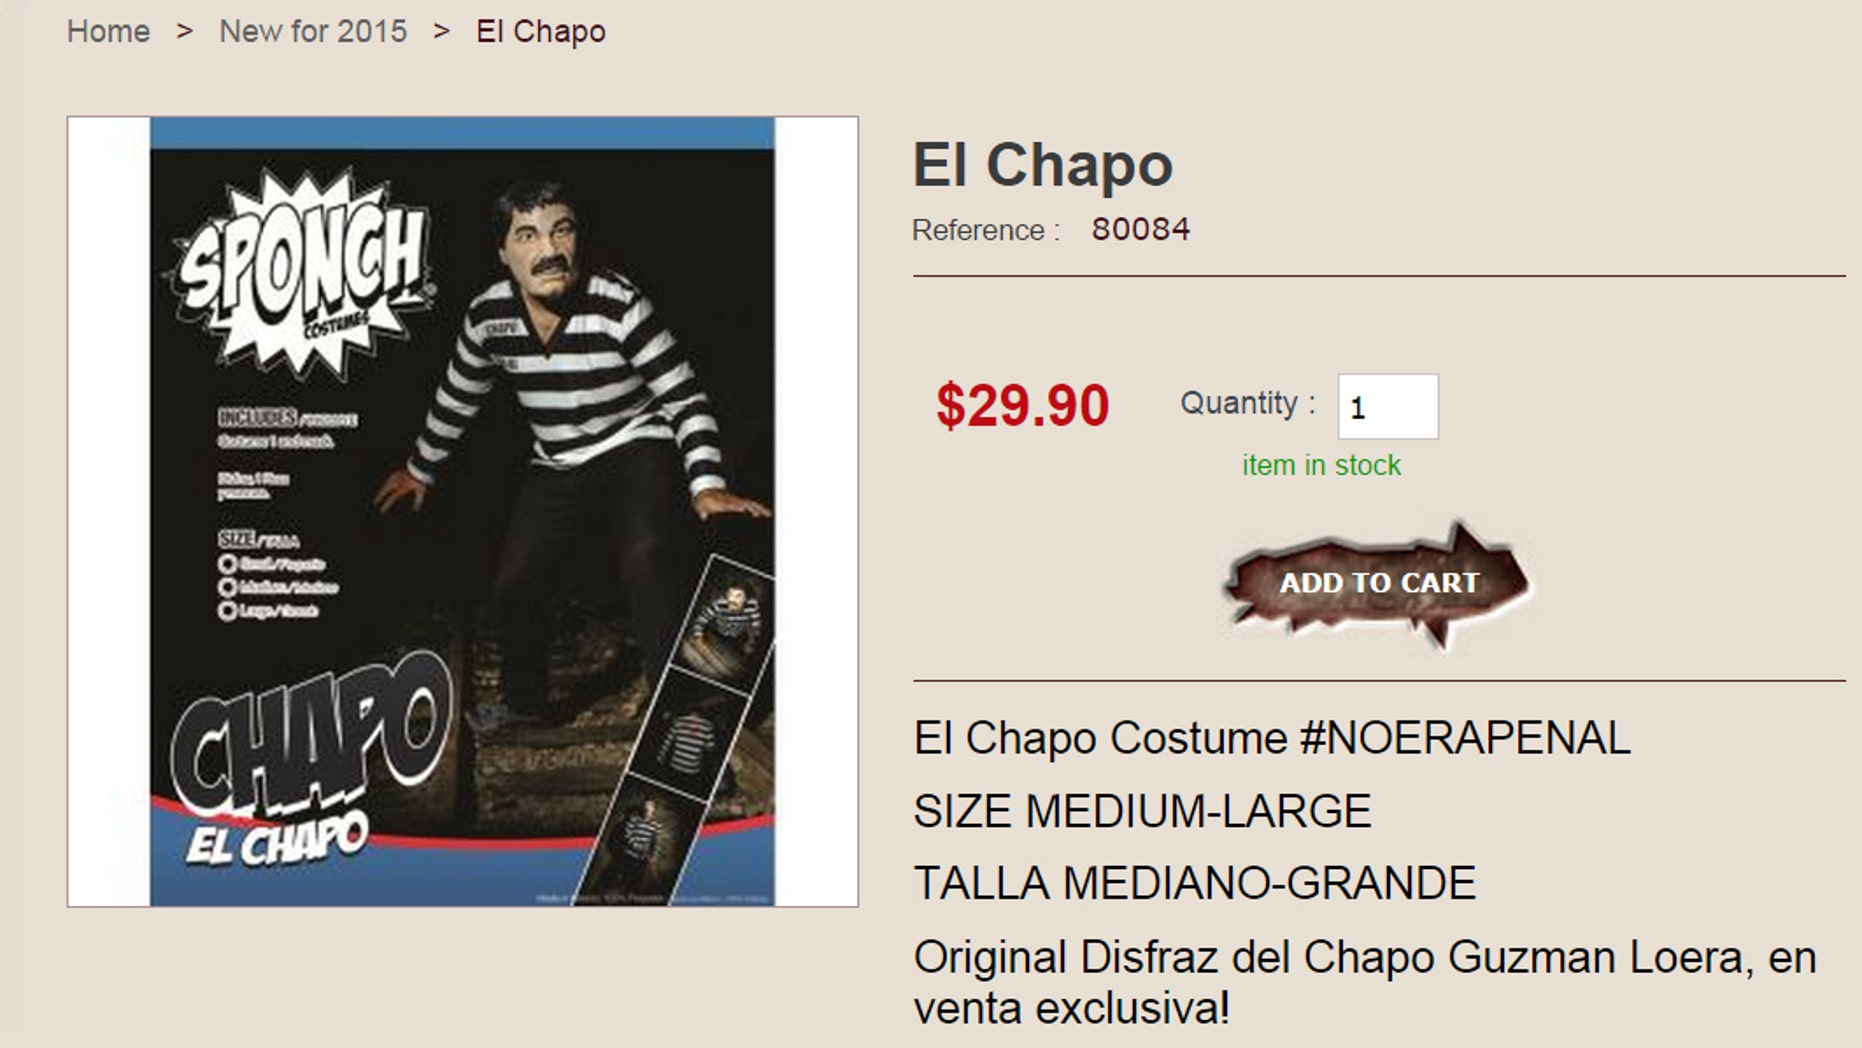 El Chapo outfit at GhoulishProductions.com. (Image: Screen shot)